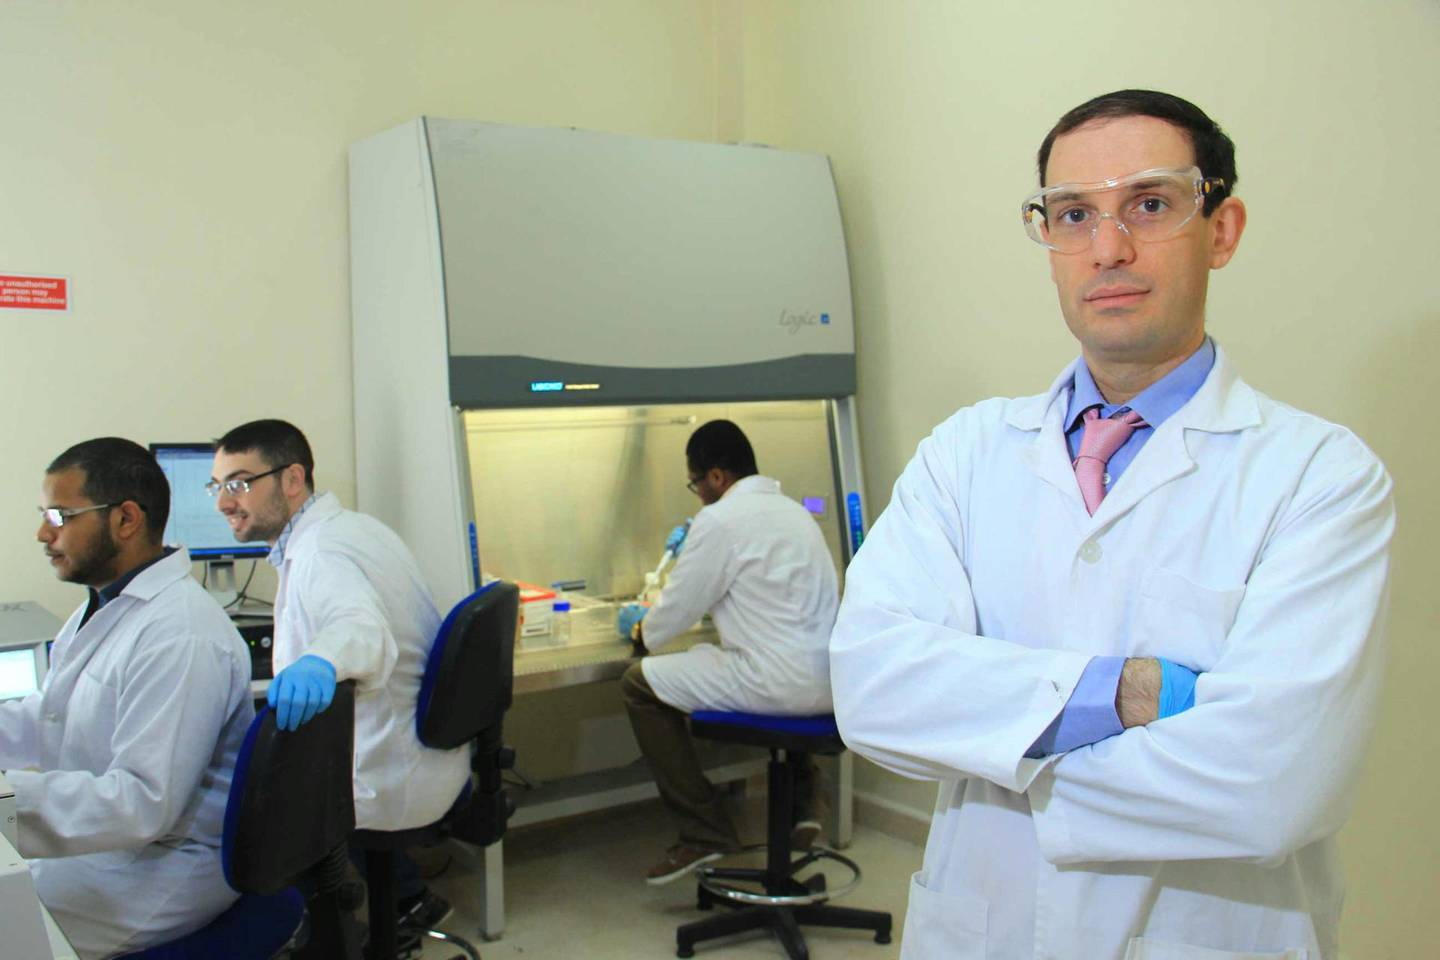 Ghaleb Husseini, professor of chemical engineering at the College of Engineering at the  American University of Sharjah. He is among a group of 20 academics who were granted the golden or long-term visa for the UAE. Prof Husseini's work includes creating nano carriers or capsules that will transport chemotherapy directly to the site of a cancerous tumour so the patient does not suffer side effects.Courtesy:  Prof Ghaleb Husseini